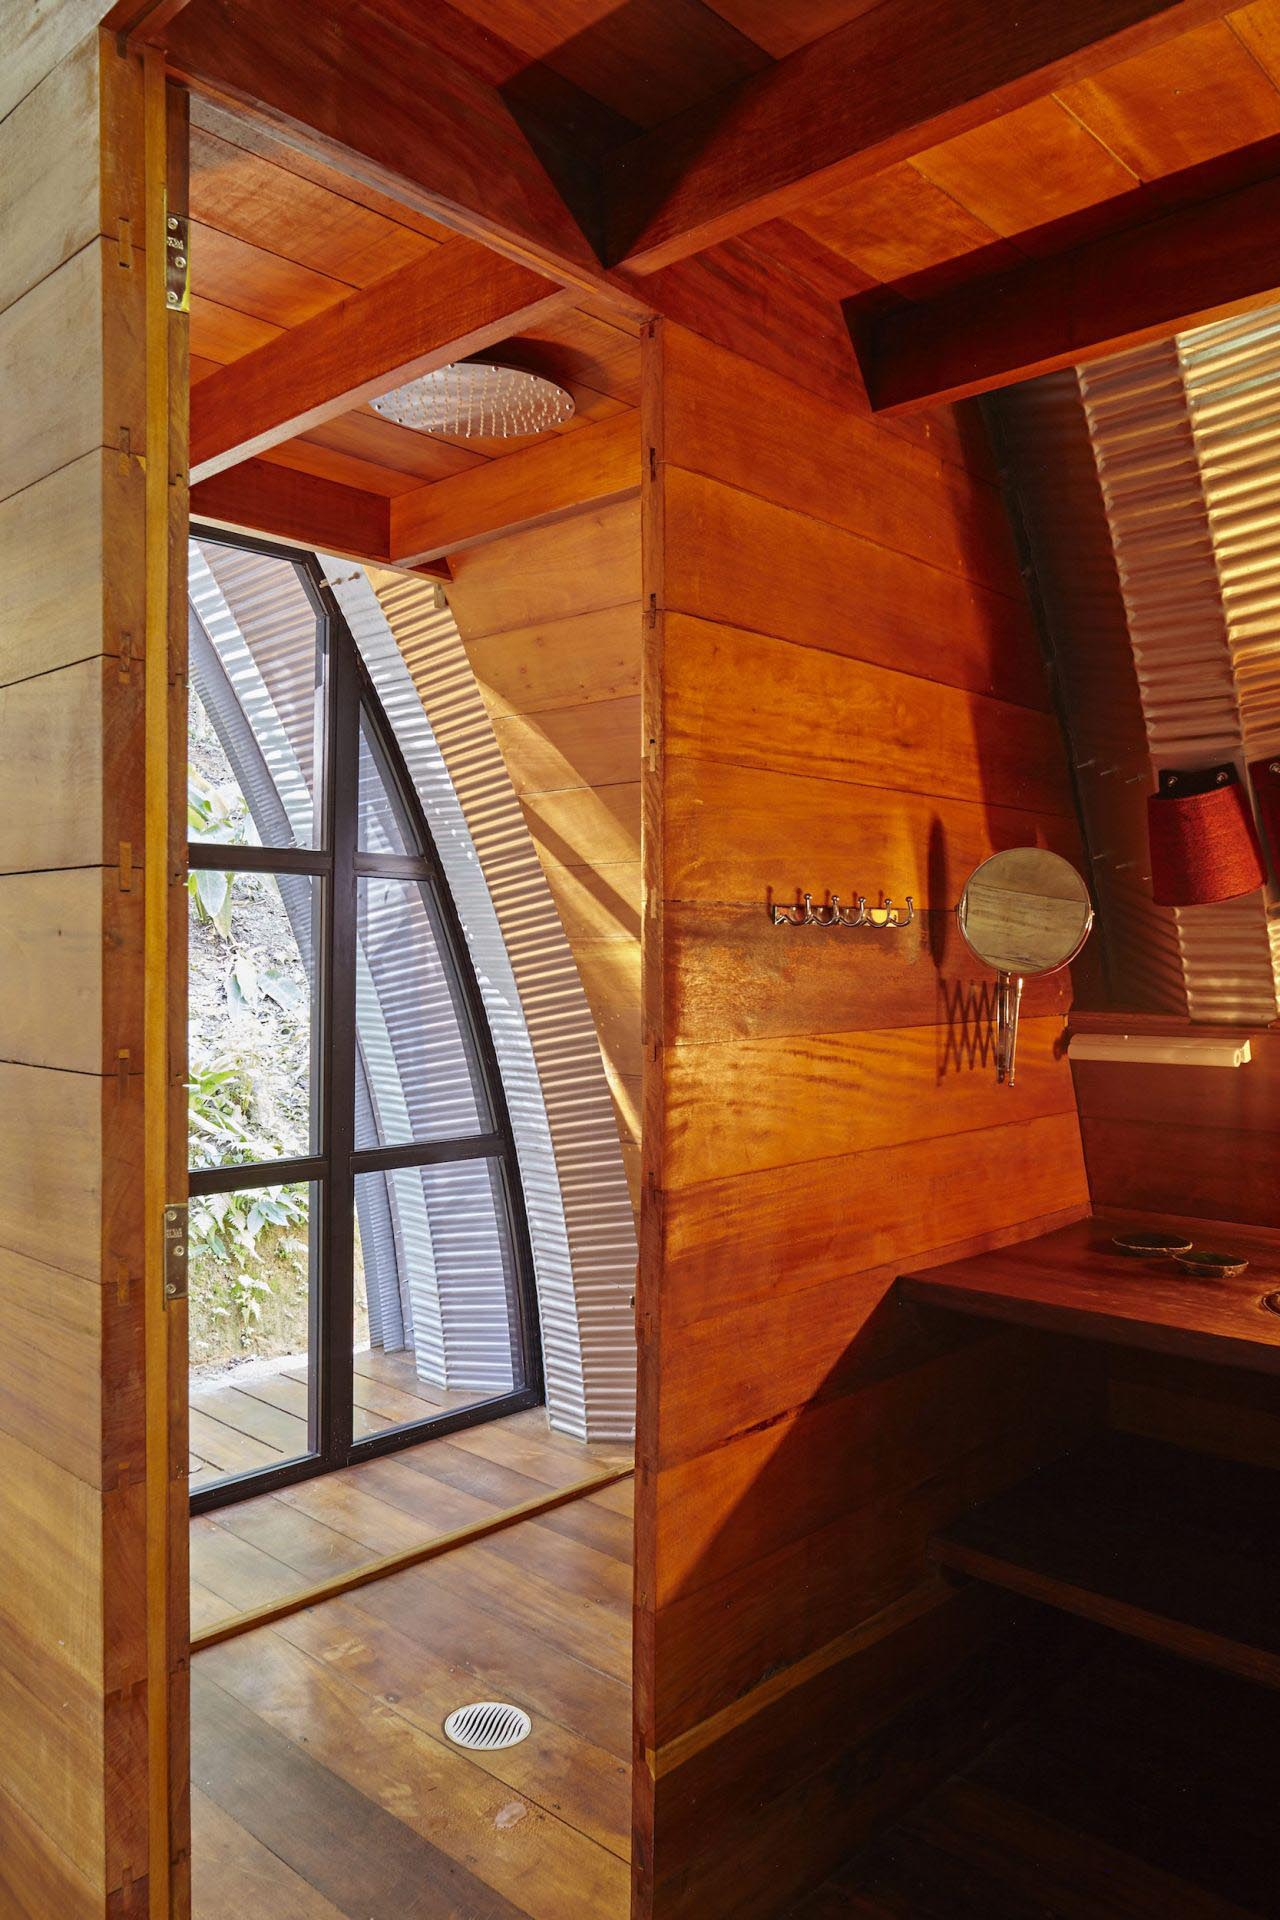 A modern bathroom lined with wood, that has a shower with tree views.